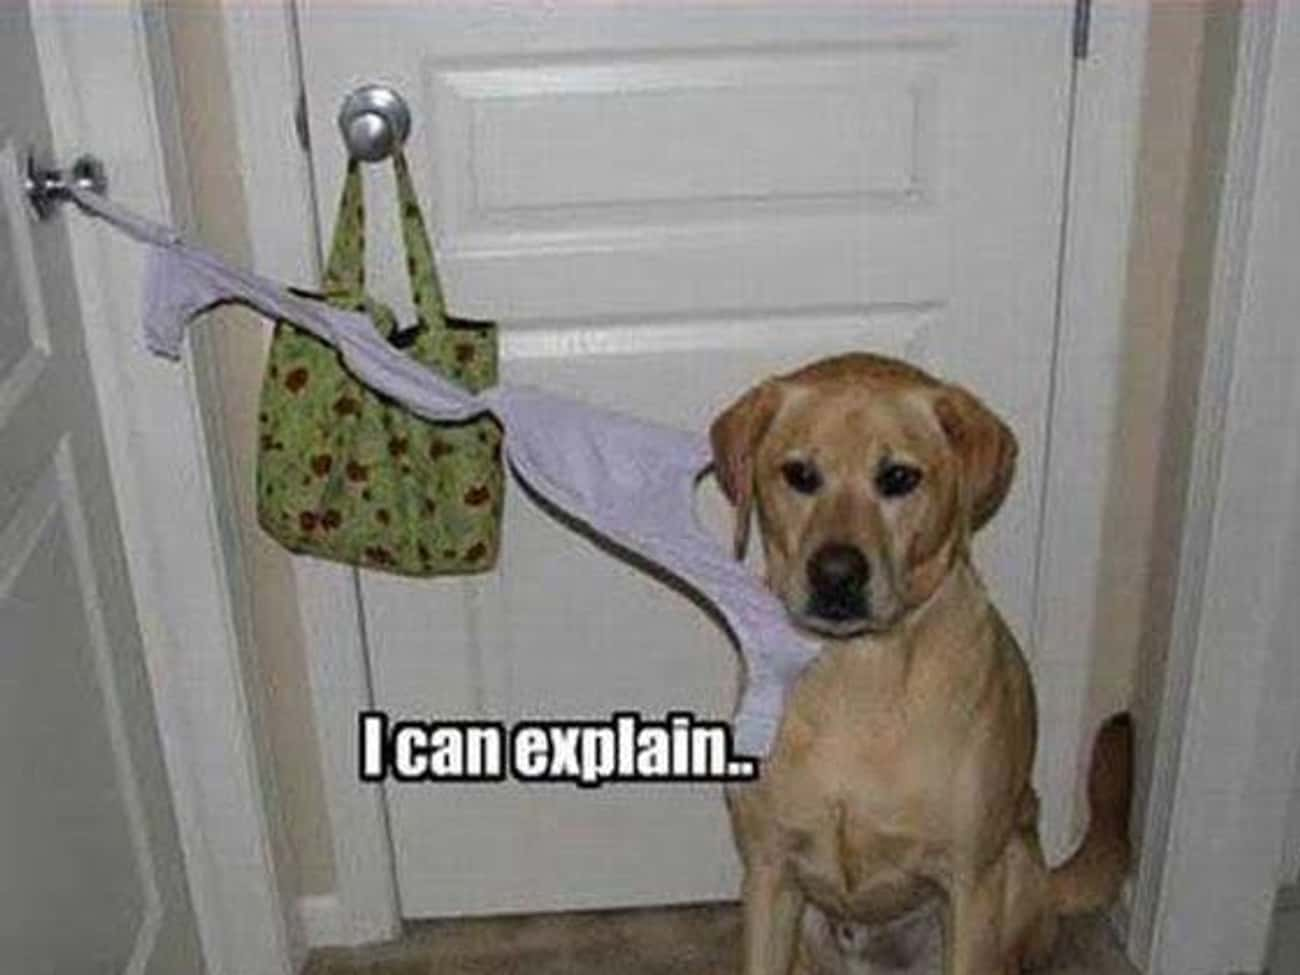 """Sup Bra! is listed (or ranked) 2 on the list The Funniest """"Caught in the Act"""" Photos Ever"""